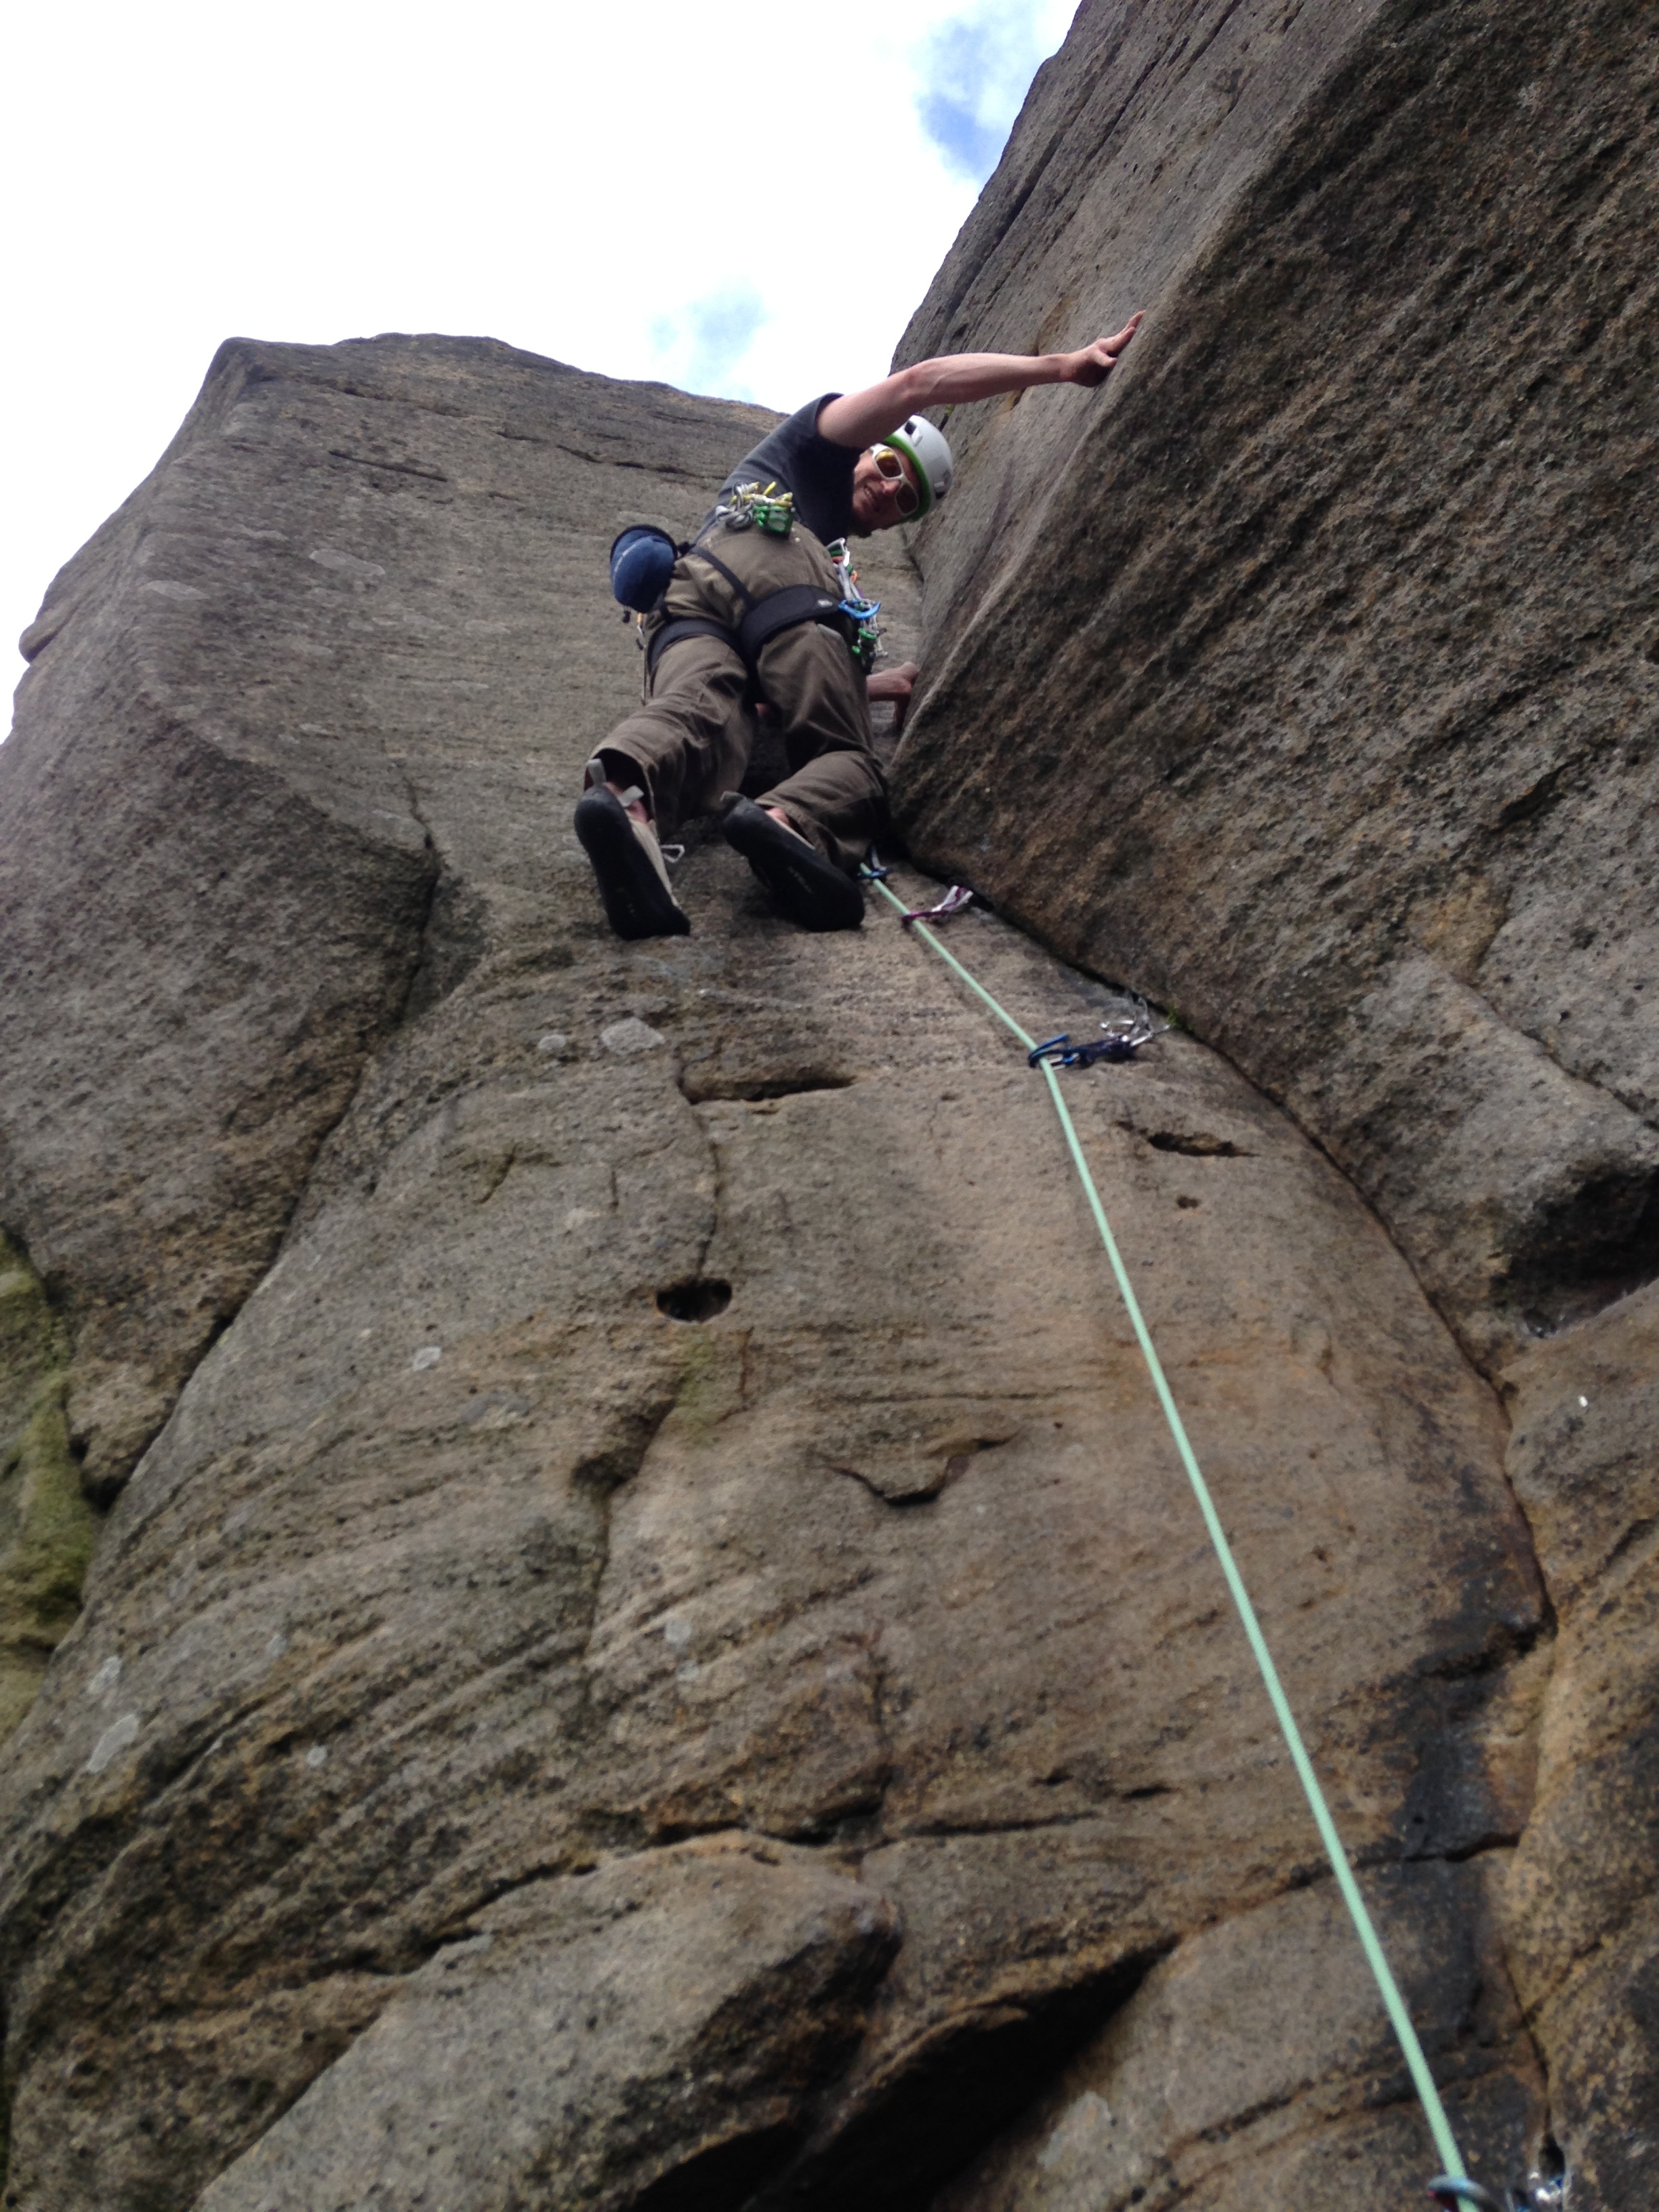 Learn to lead climb and you could experience routes like this, Lachlan loving the moves on Long Tall Sally (E1 5b) Burbage, Peak District